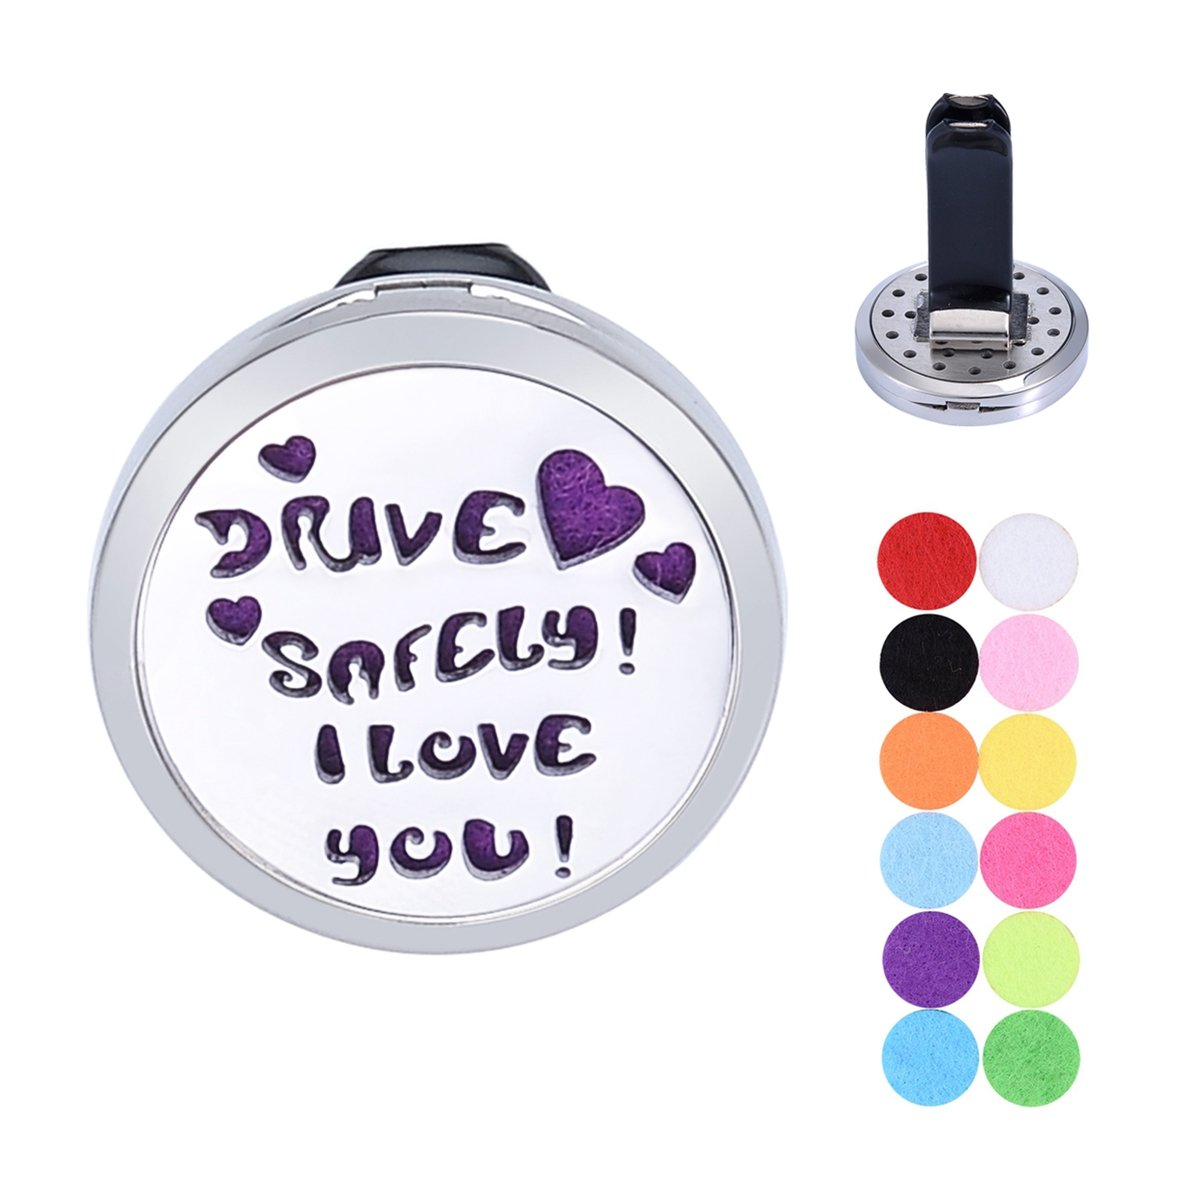 """DRIVE SAFELY I LOVE YOU"" Car Air Freshener Aromatherapy Essential Oil Diffuser Vent Clip Stainless Steel Locket with 12 Felt Pads Supreme glory"